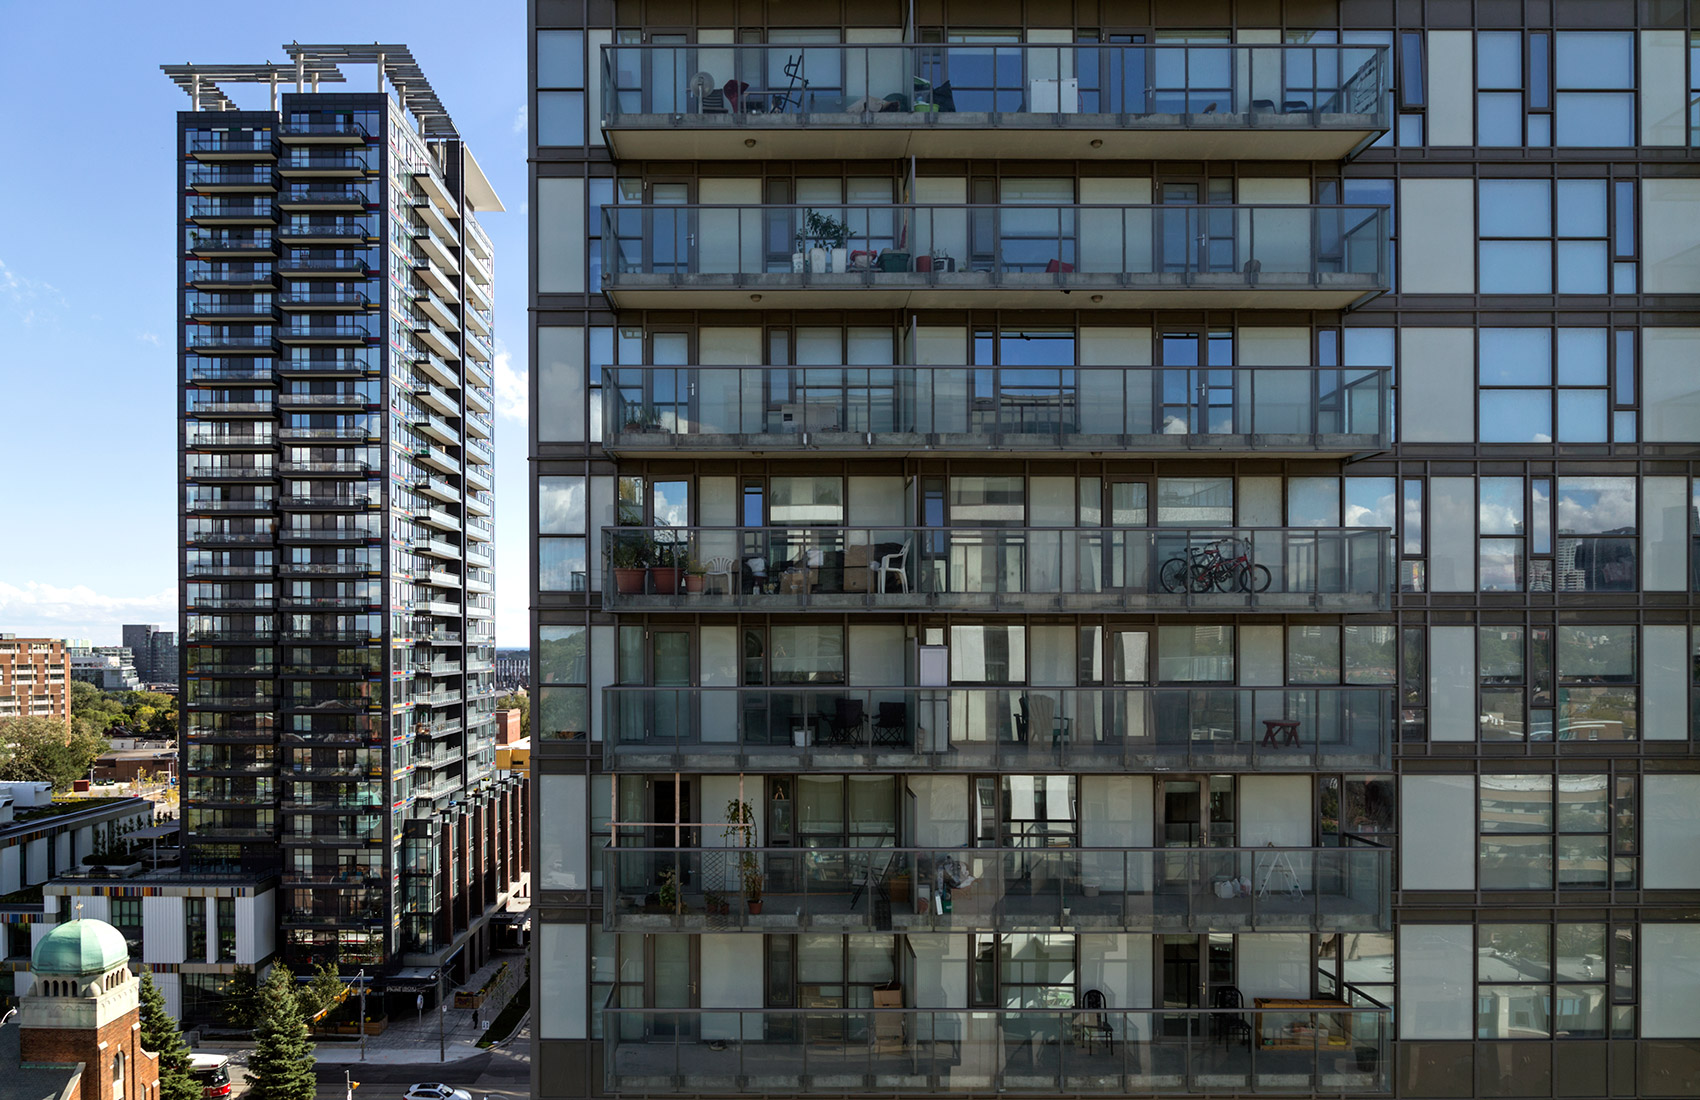 20141105. Living the high-life in mixed-income Regent Park (Pain